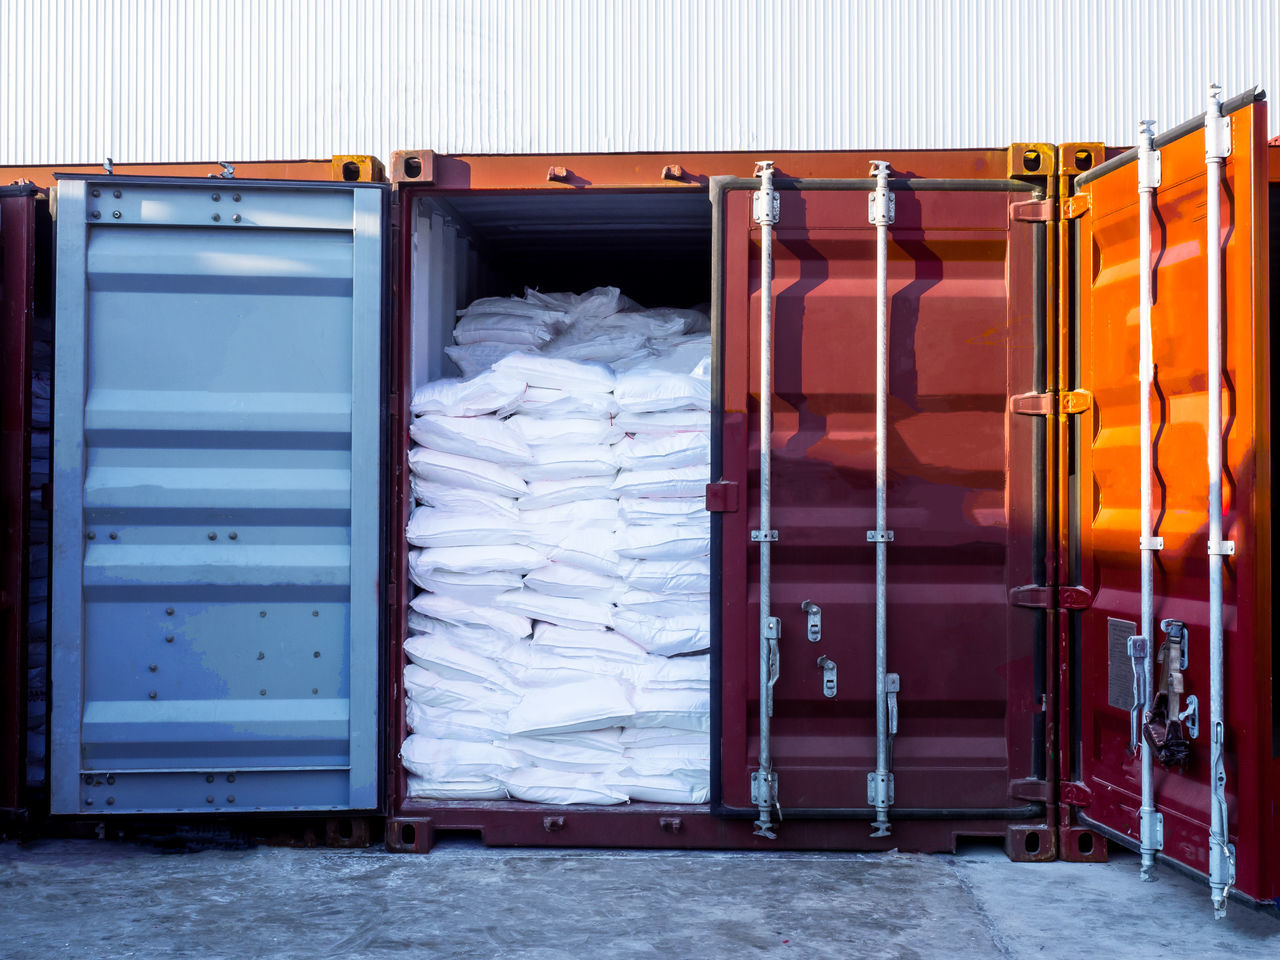 Sugar in bags to stuffing in container No People Stack Day Indoors  Custom Delivery Clean Shipping  Shipping  Shipping  Shipping  Shipping  Freight Transportation Crane Indoors  Indoors  Cargo Container Port Discharging Manufacturing Equipment Lifting Indoors  Shipping  Shipping  Indoors  Stuffing